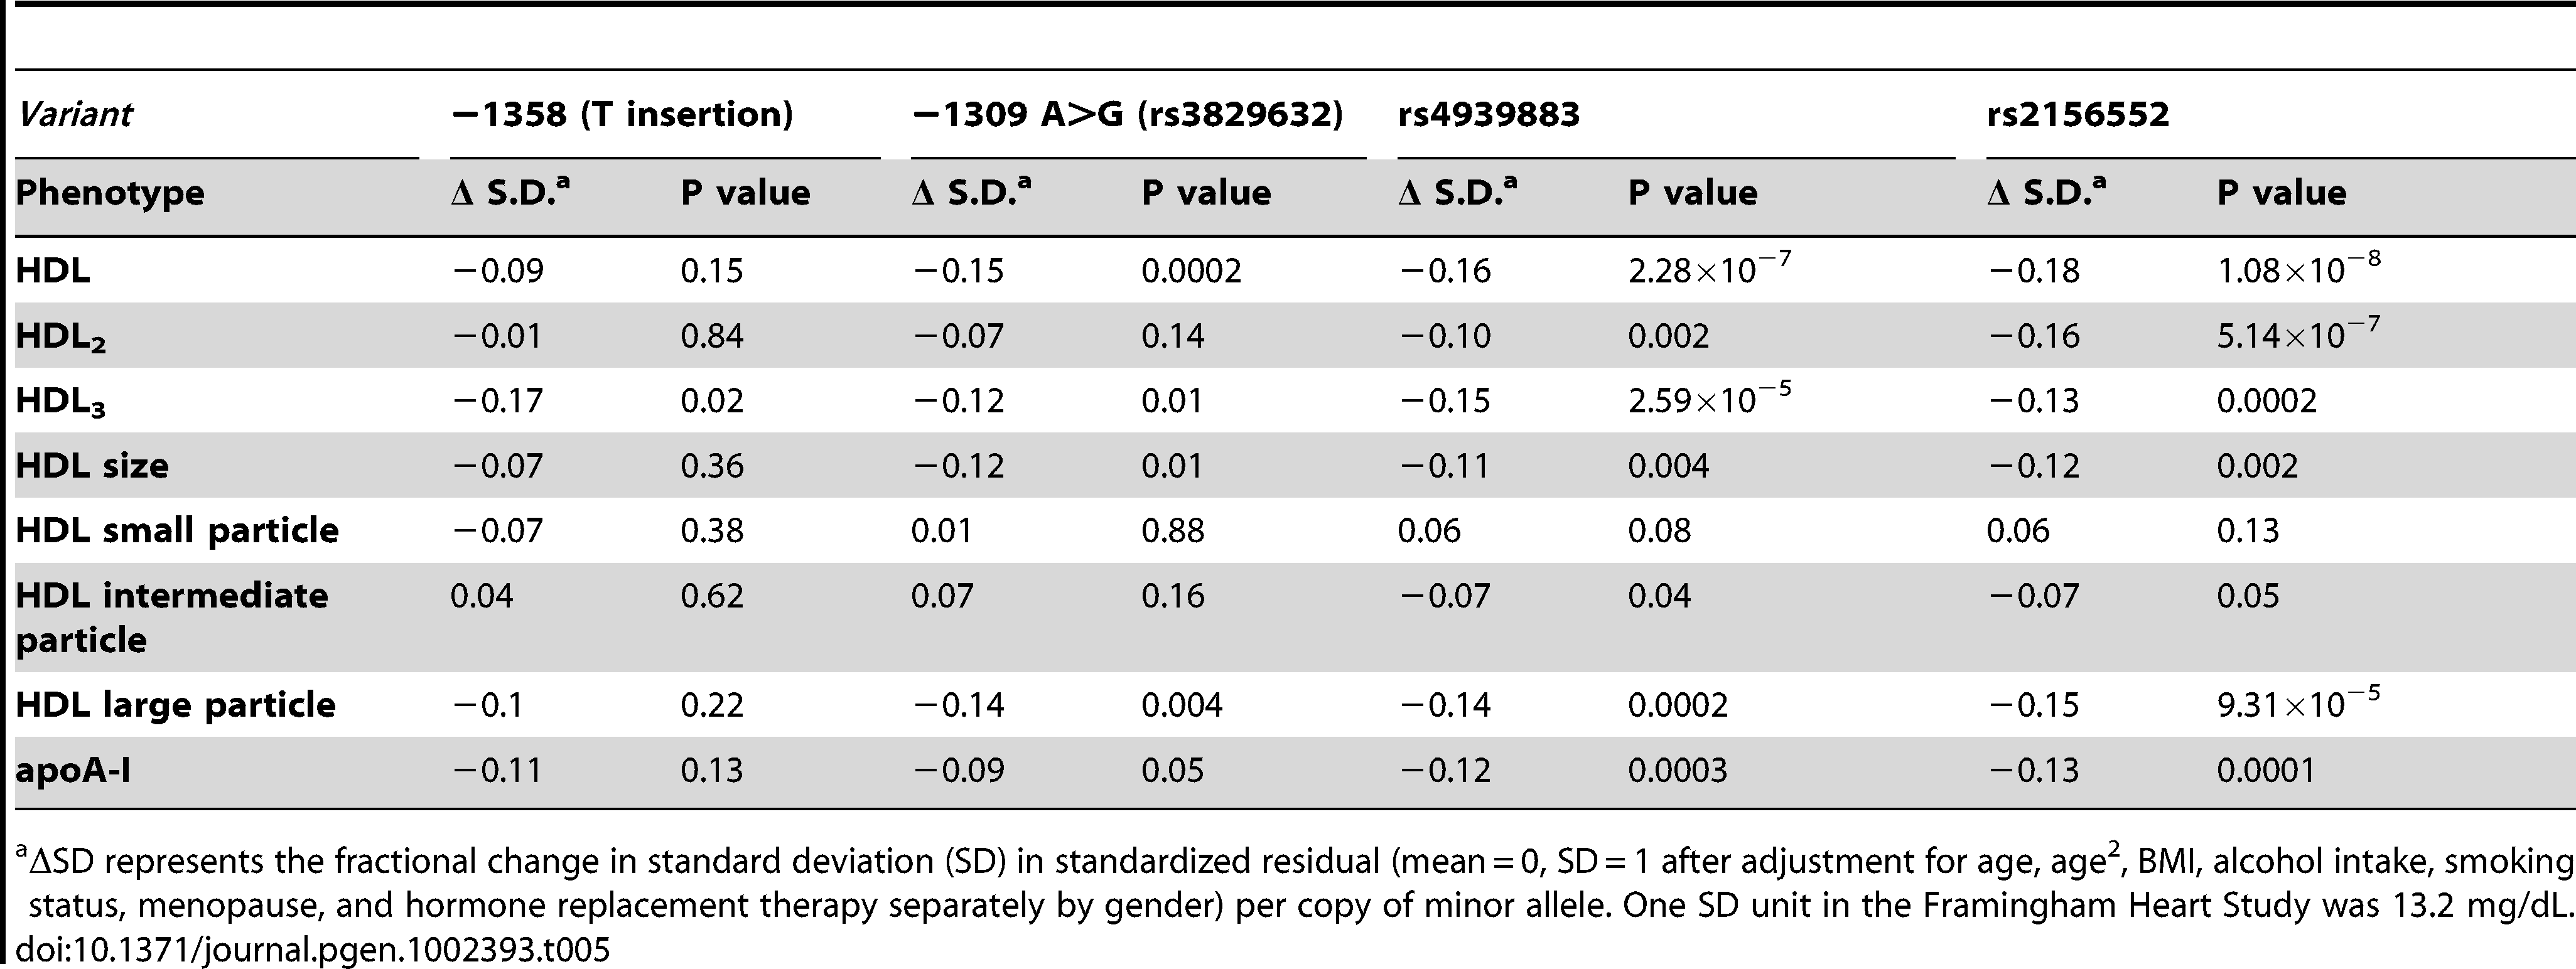 Association of common variants with HDL in Framingham Heart Study.